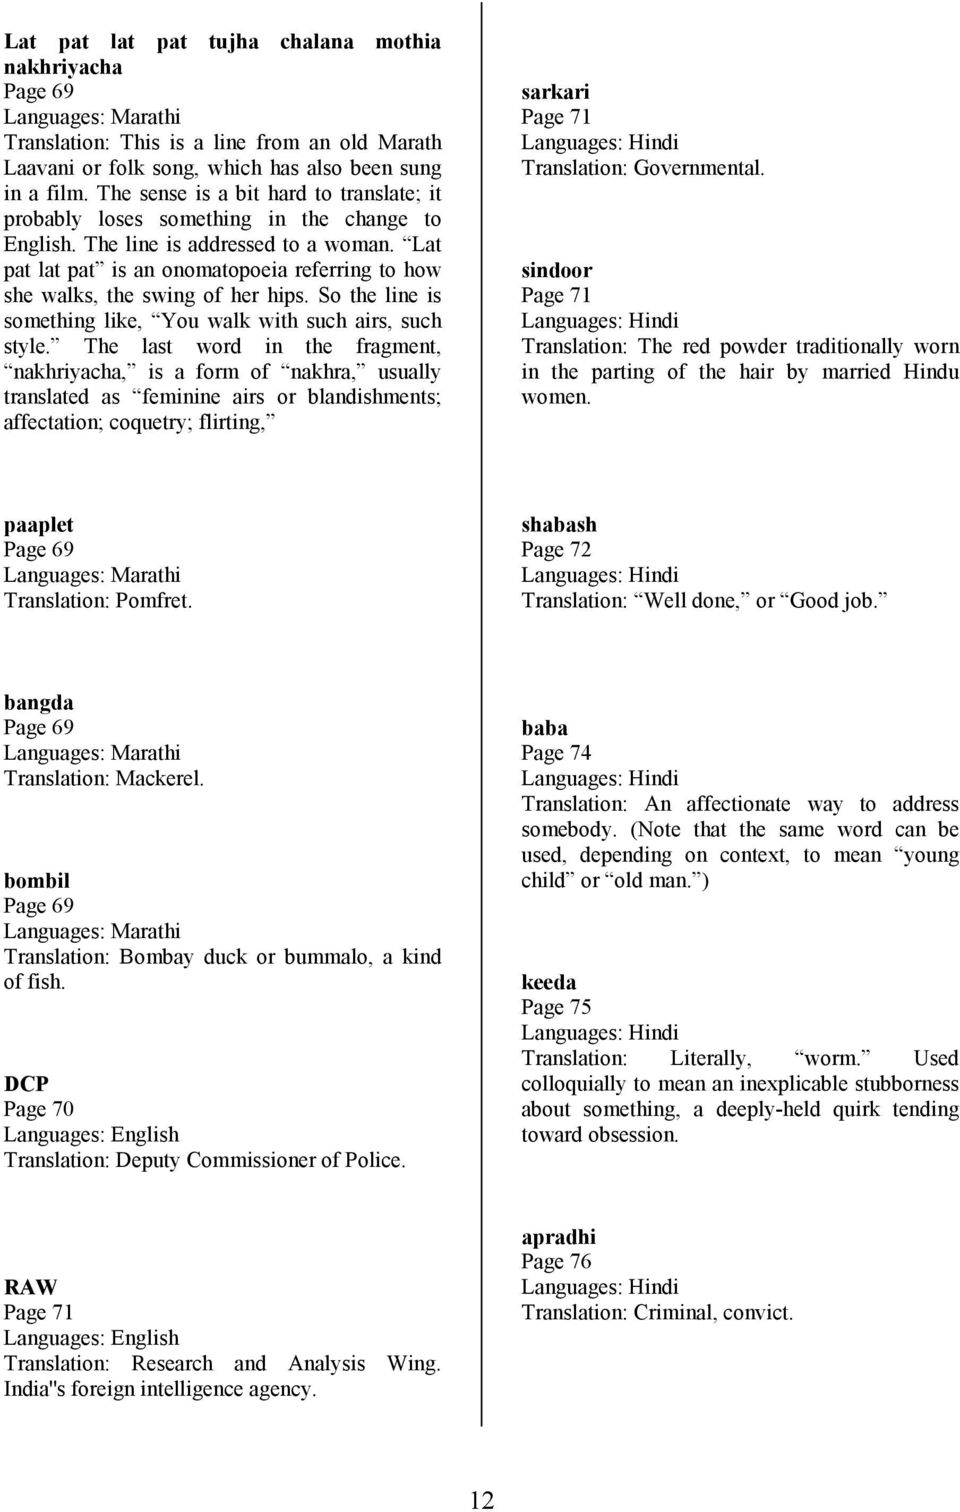 Glossary For Sacred Games Updated July 6 Pdf